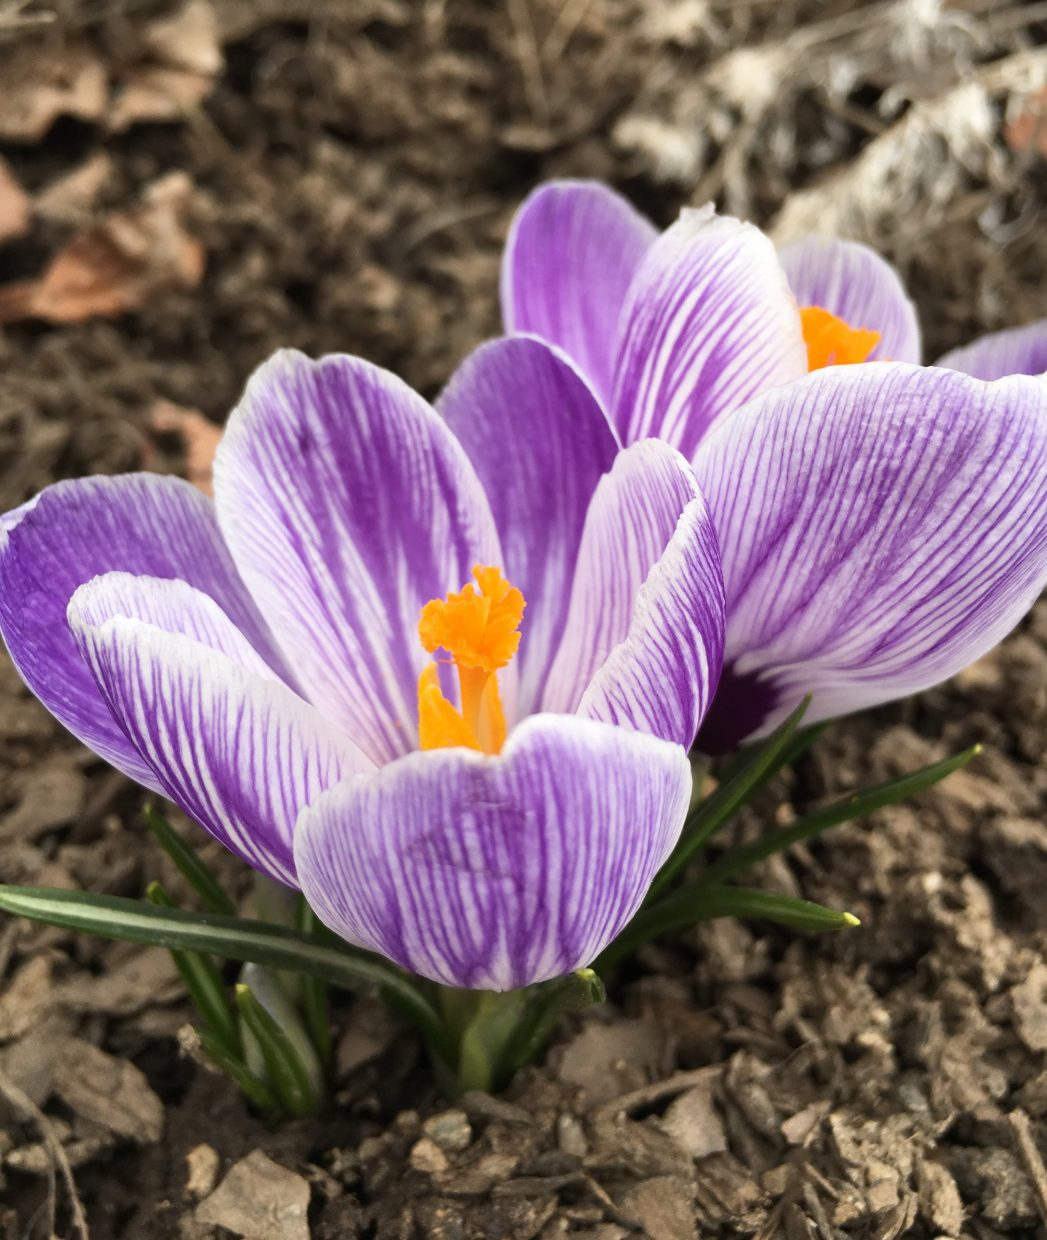 Crocuses in bloom in the Yampa Valley.